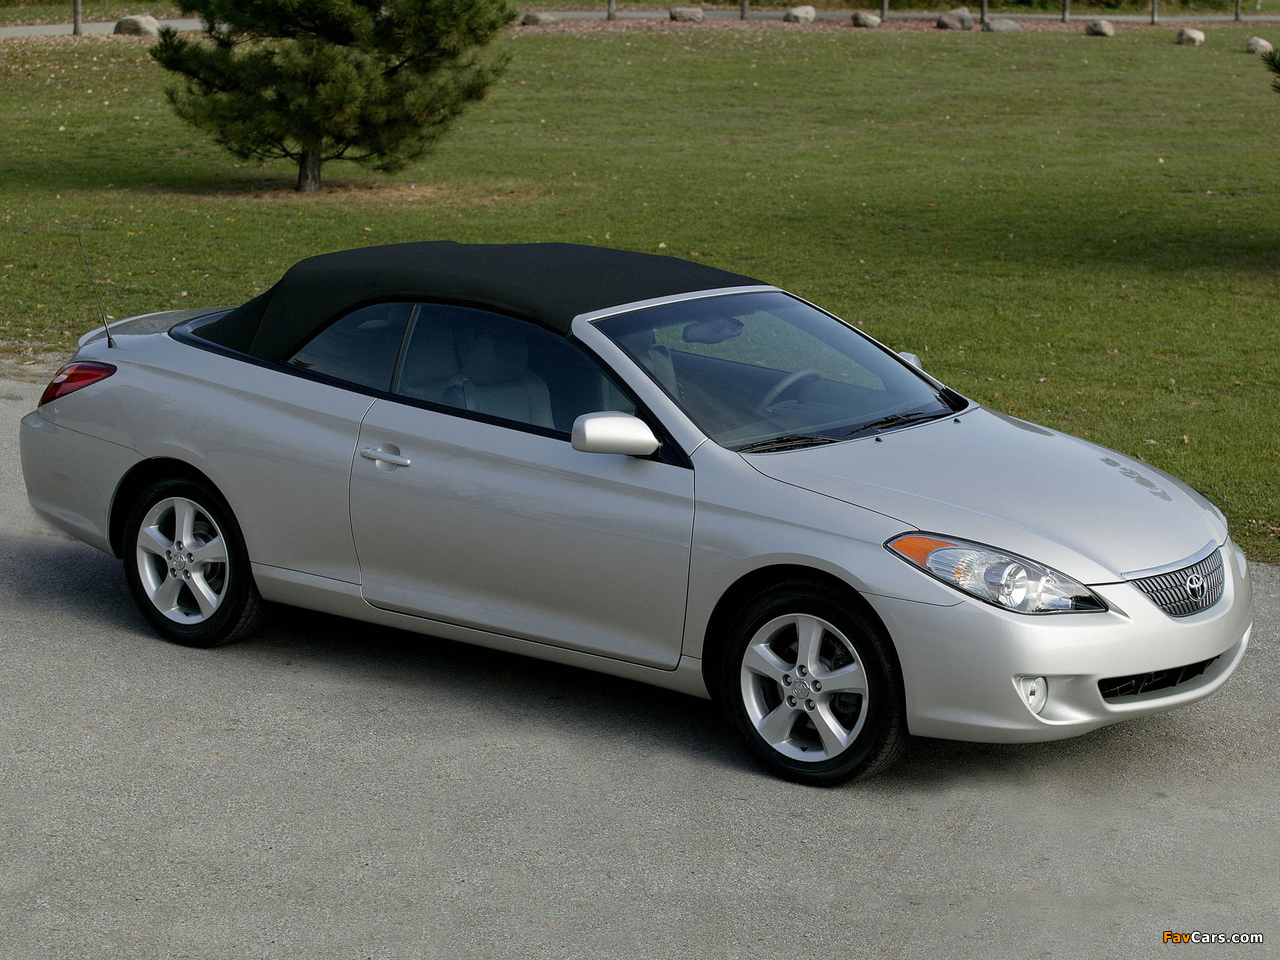 Toyota Camry Solara Convertible 2004 06 Wallpapers 1280x960